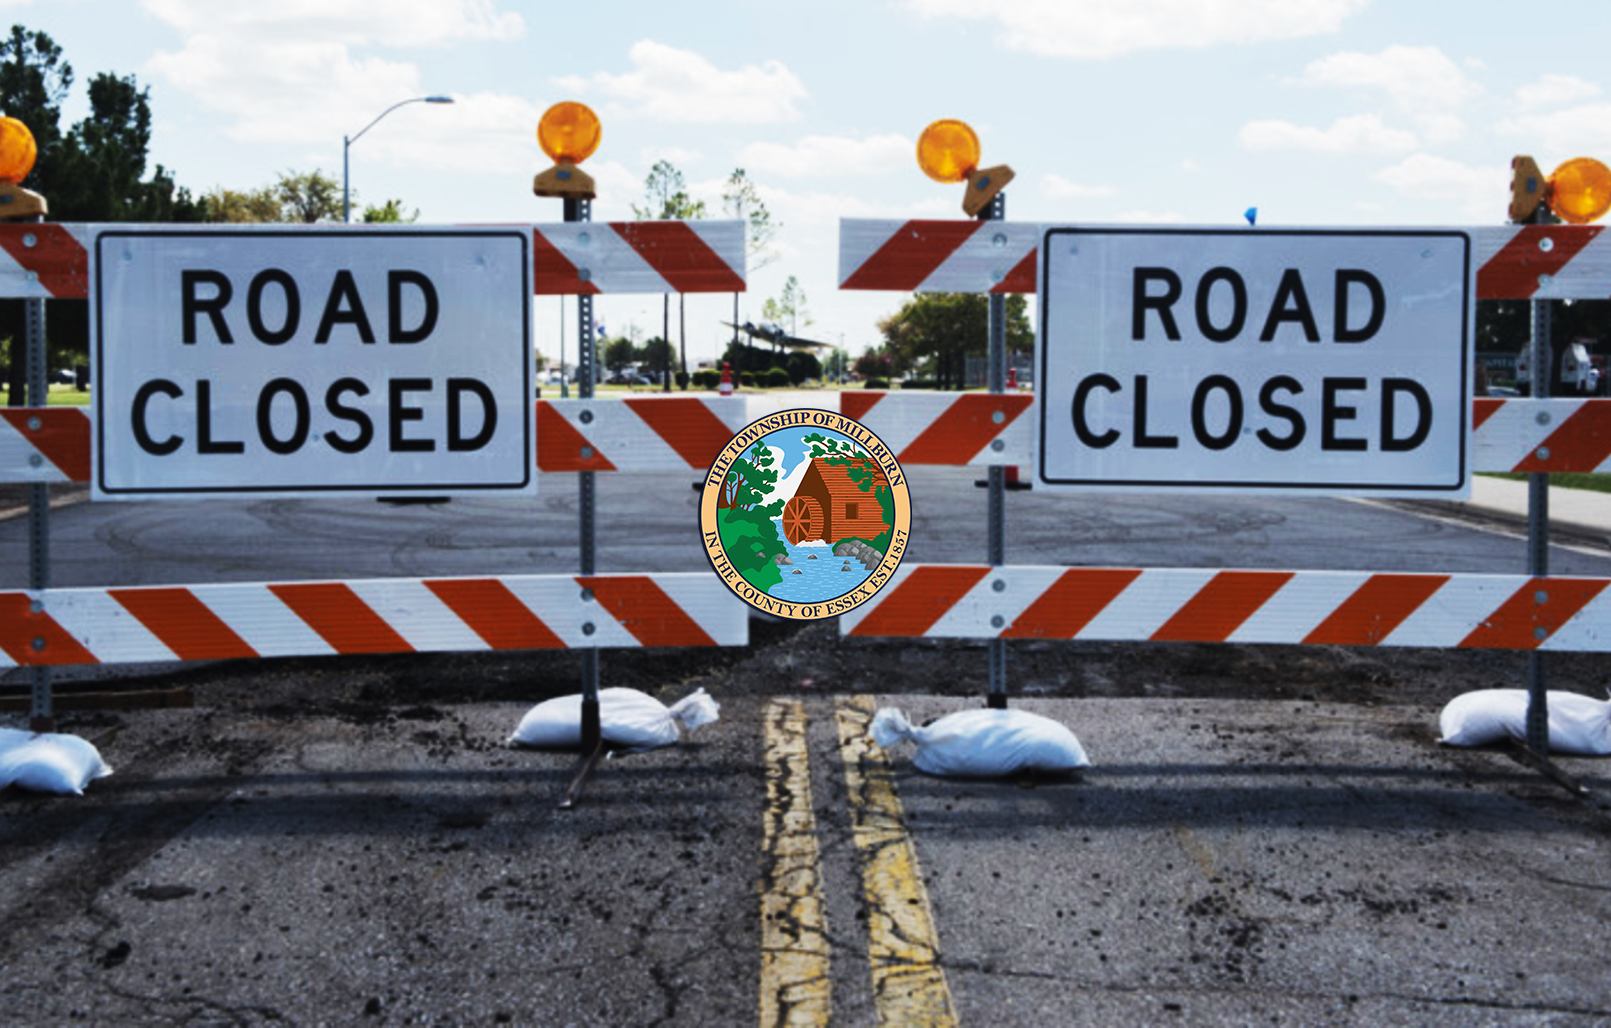 Image of road blocks with signs that say &#34Road Closed&#34